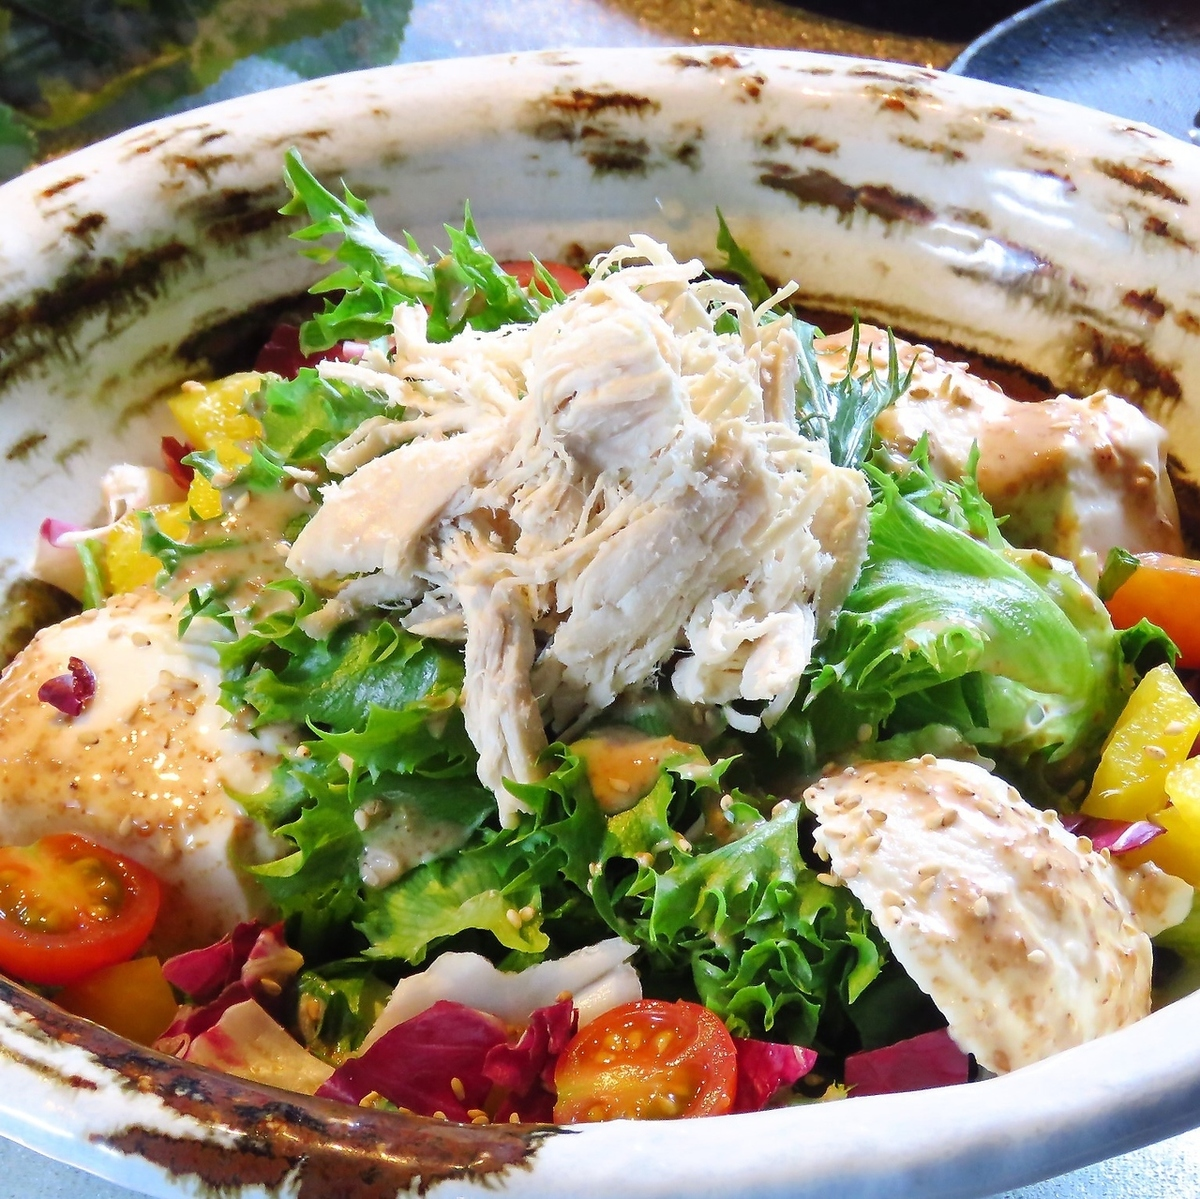 Softly steamed chicken and homemade tofu sesame sauce salad